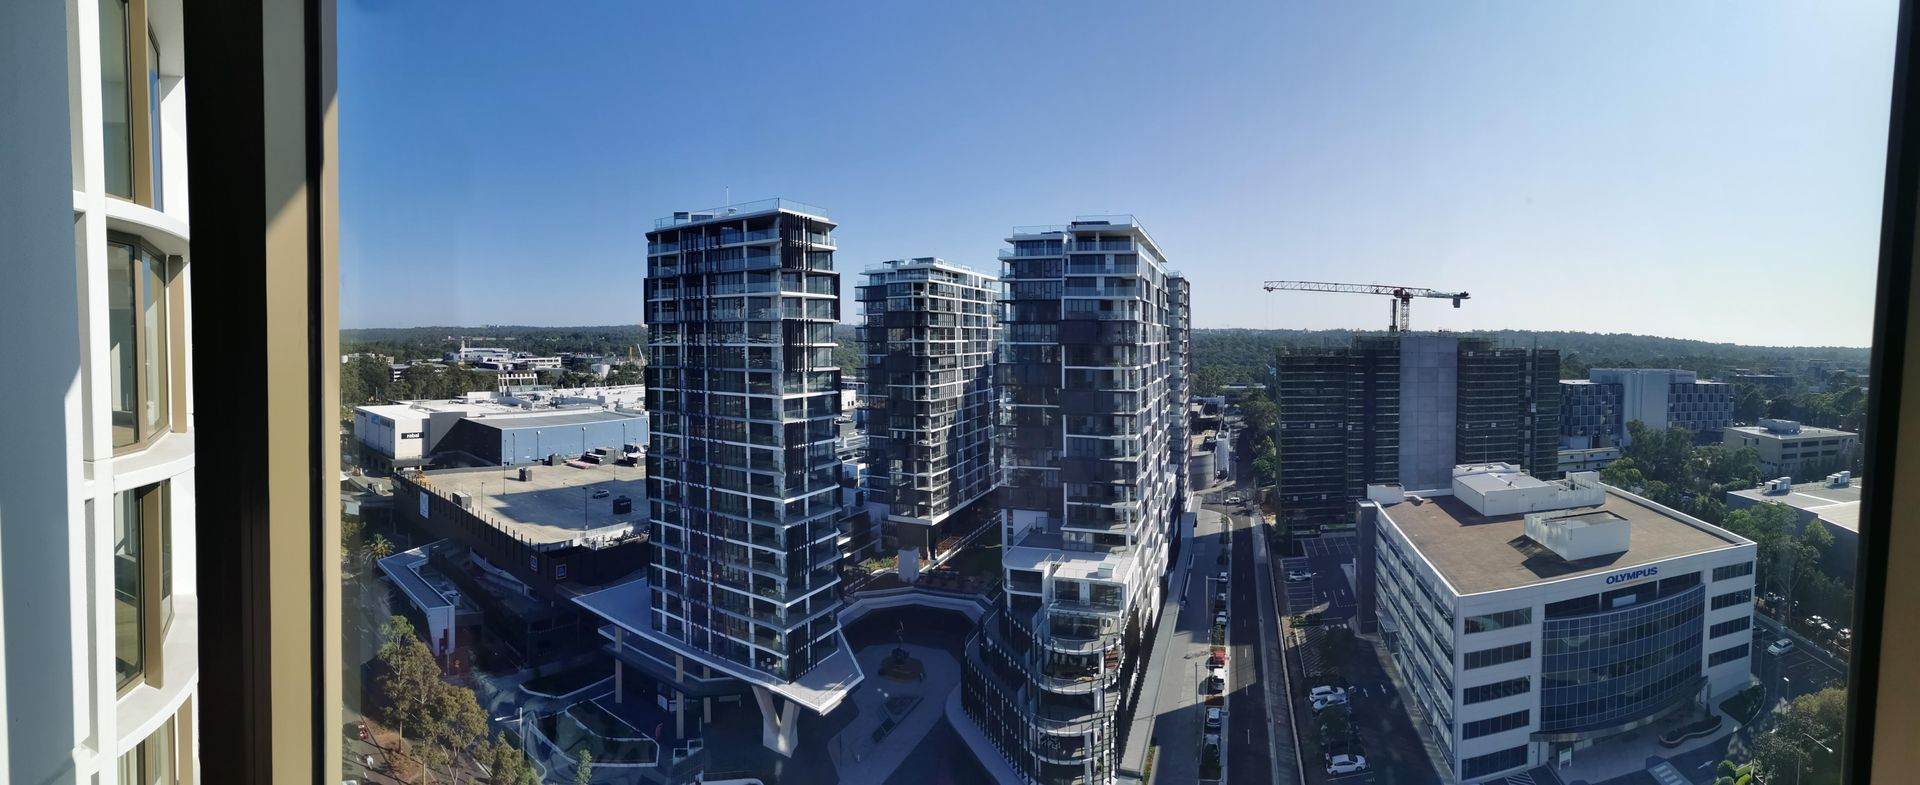 Level 18/80 Waterloo St, Macquarie Park NSW 2113, Image 0